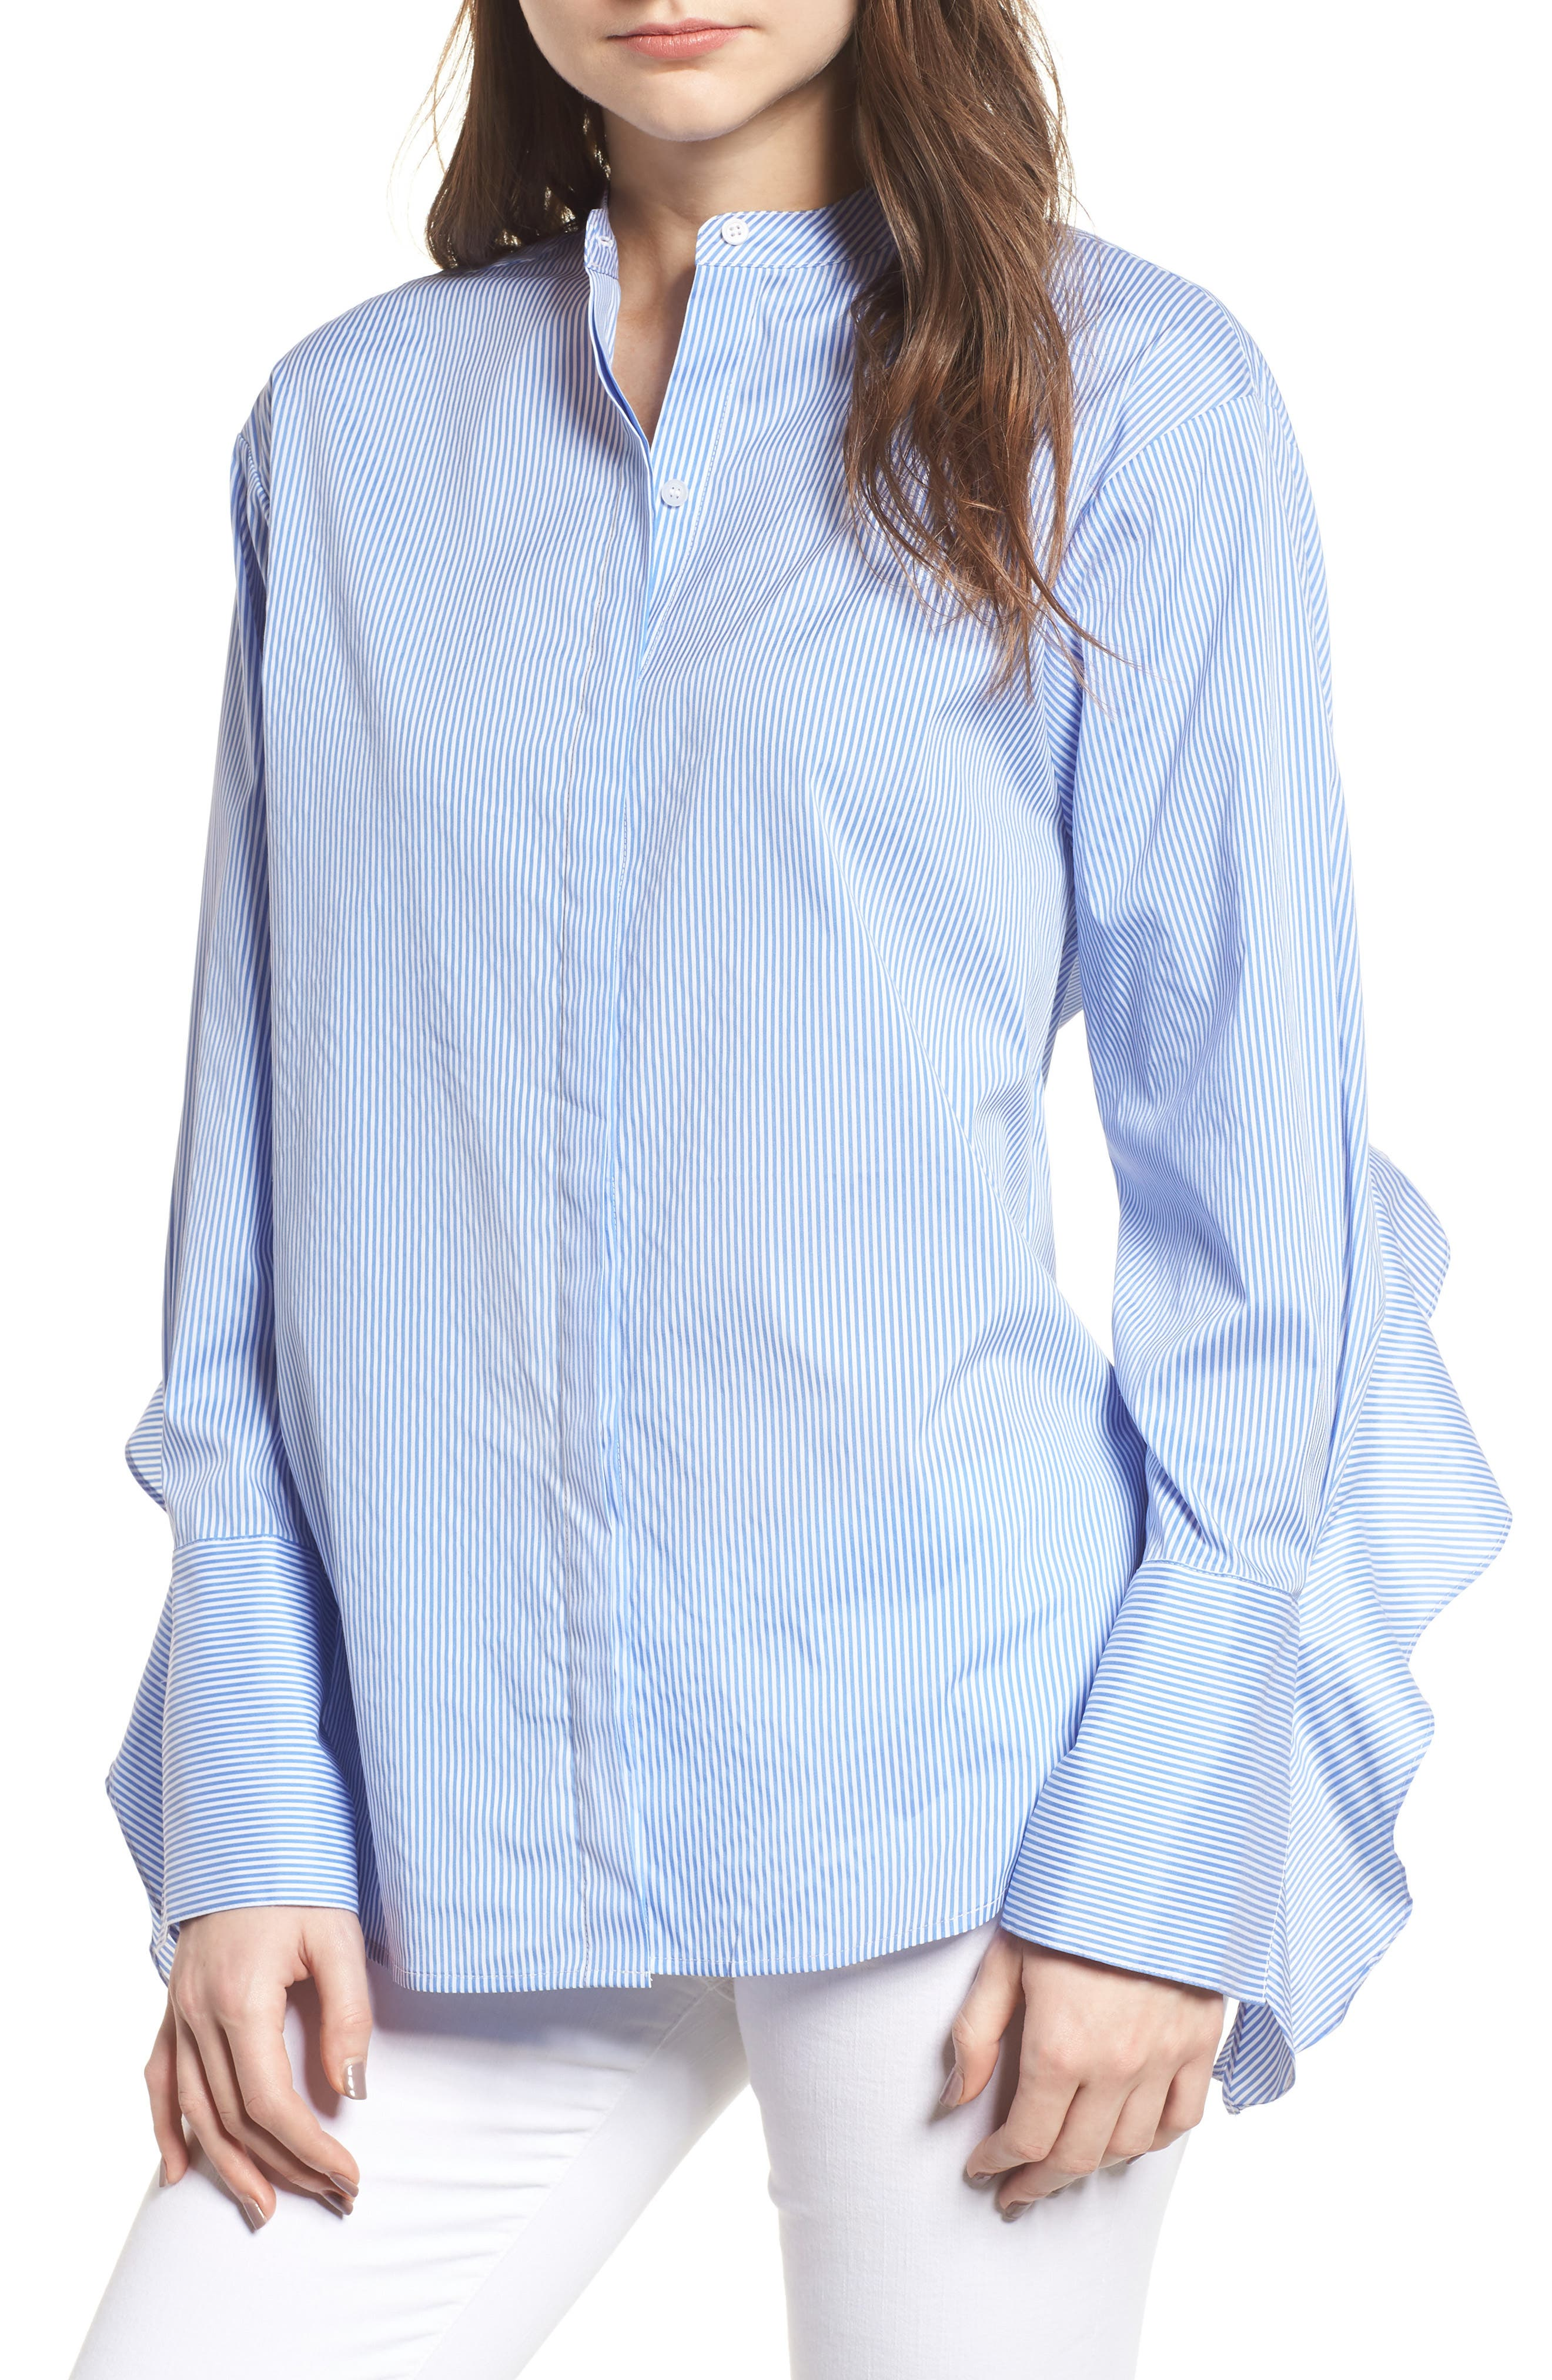 Stripe Ruffle Poplin Top,                         Main,                         color, Blue Stream Stripe